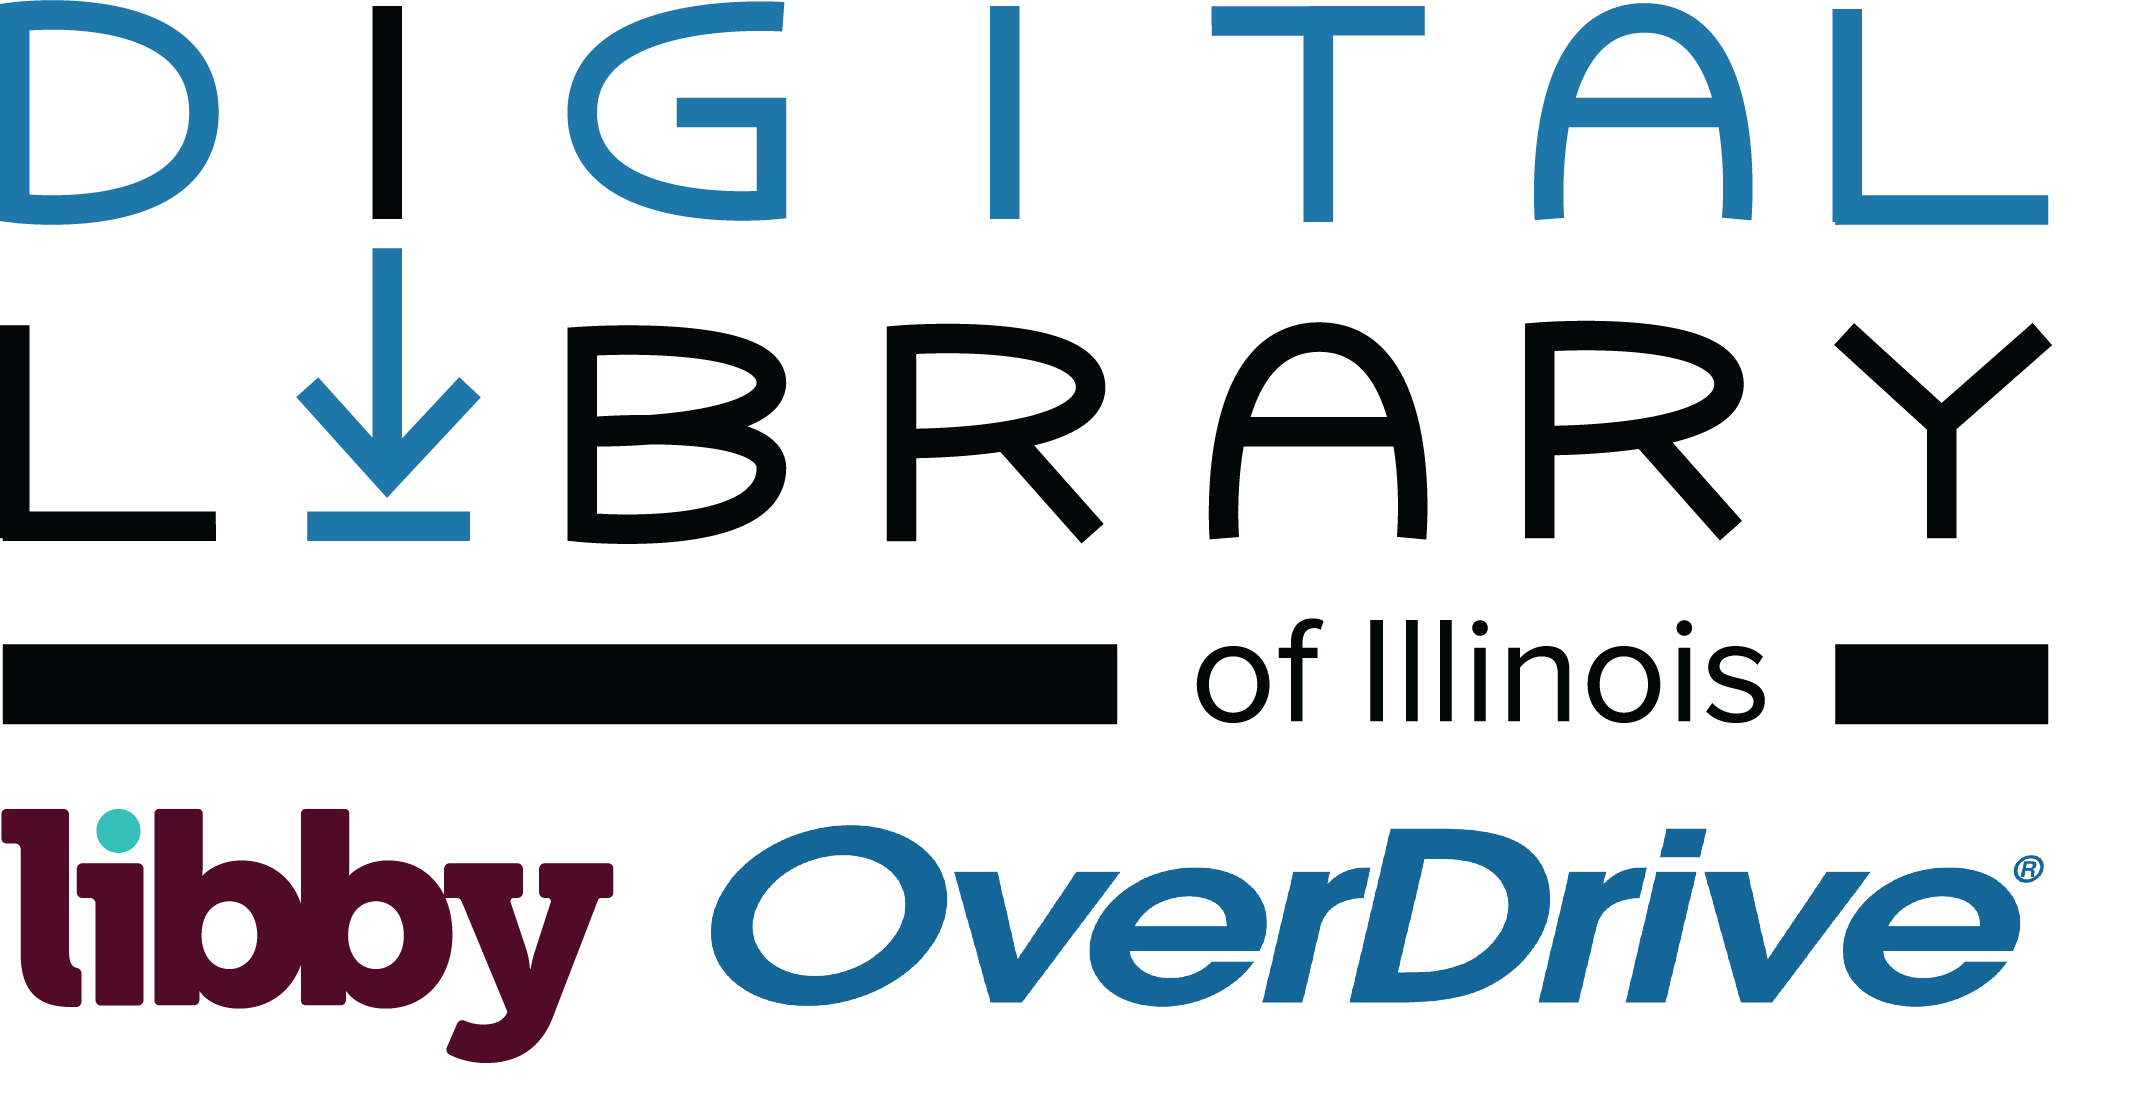 Overdrive Libby logos